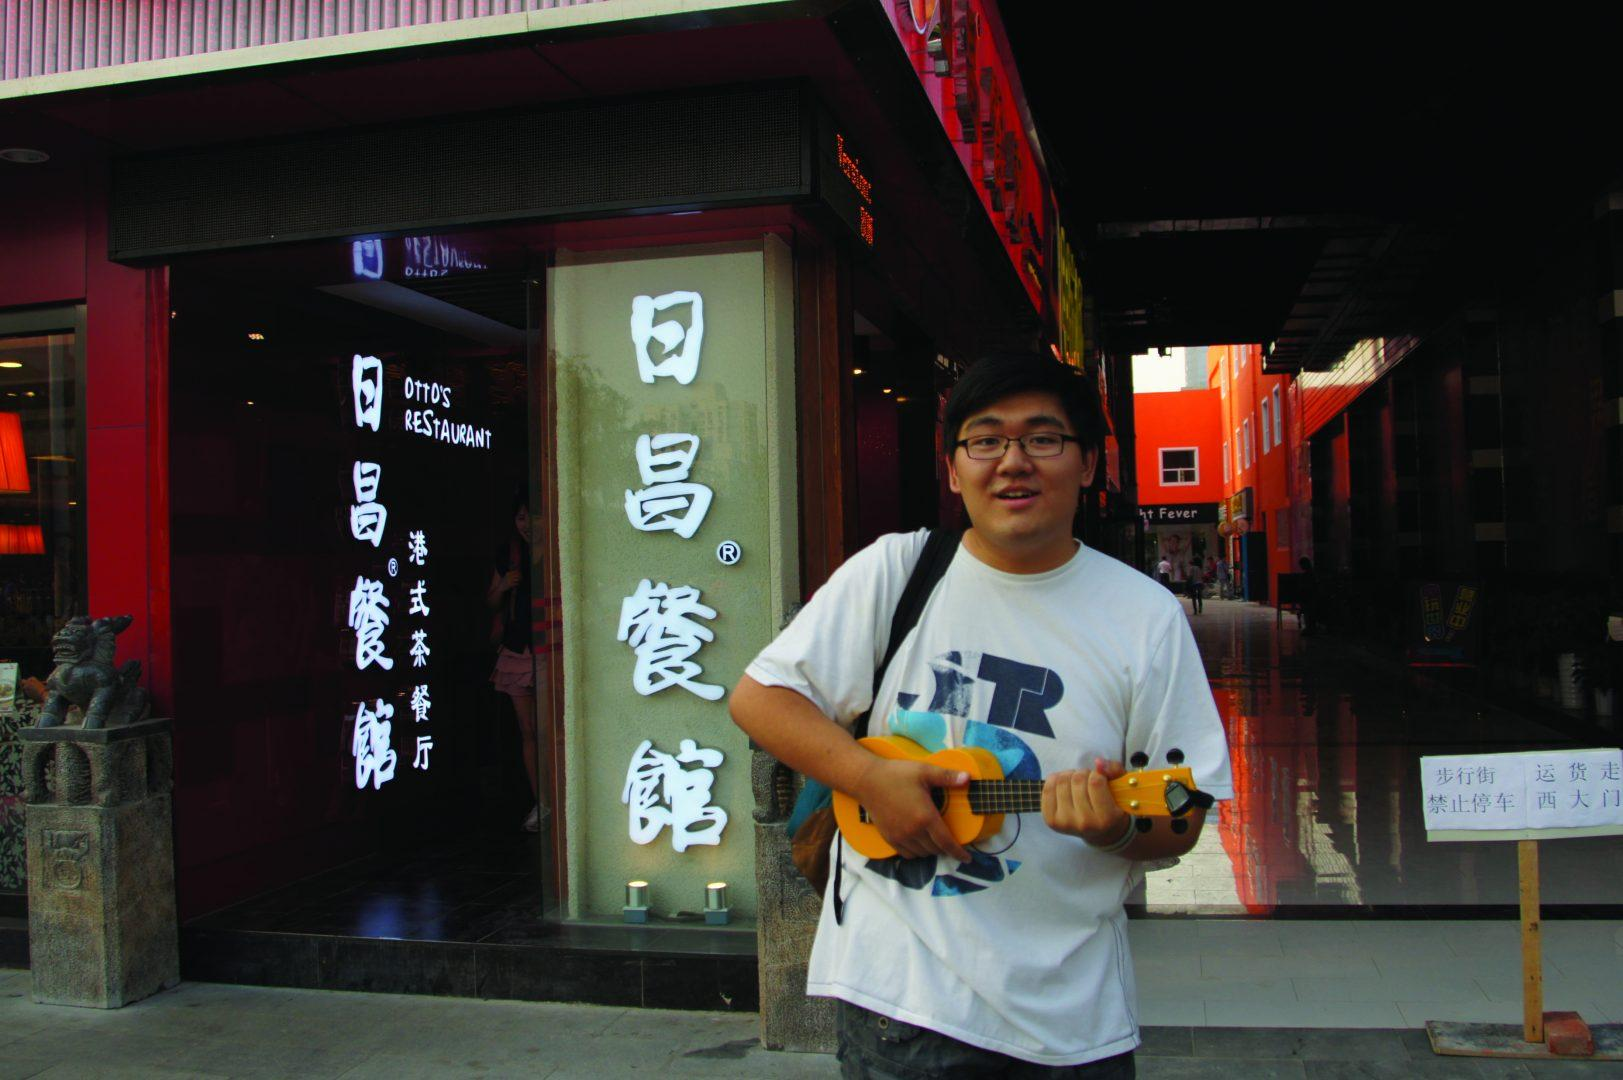 Tavy Wu, FCLC '16, poses with his ukelele in front of a restaurant in his native China.  (Photo courtesy of Tavy Wu)